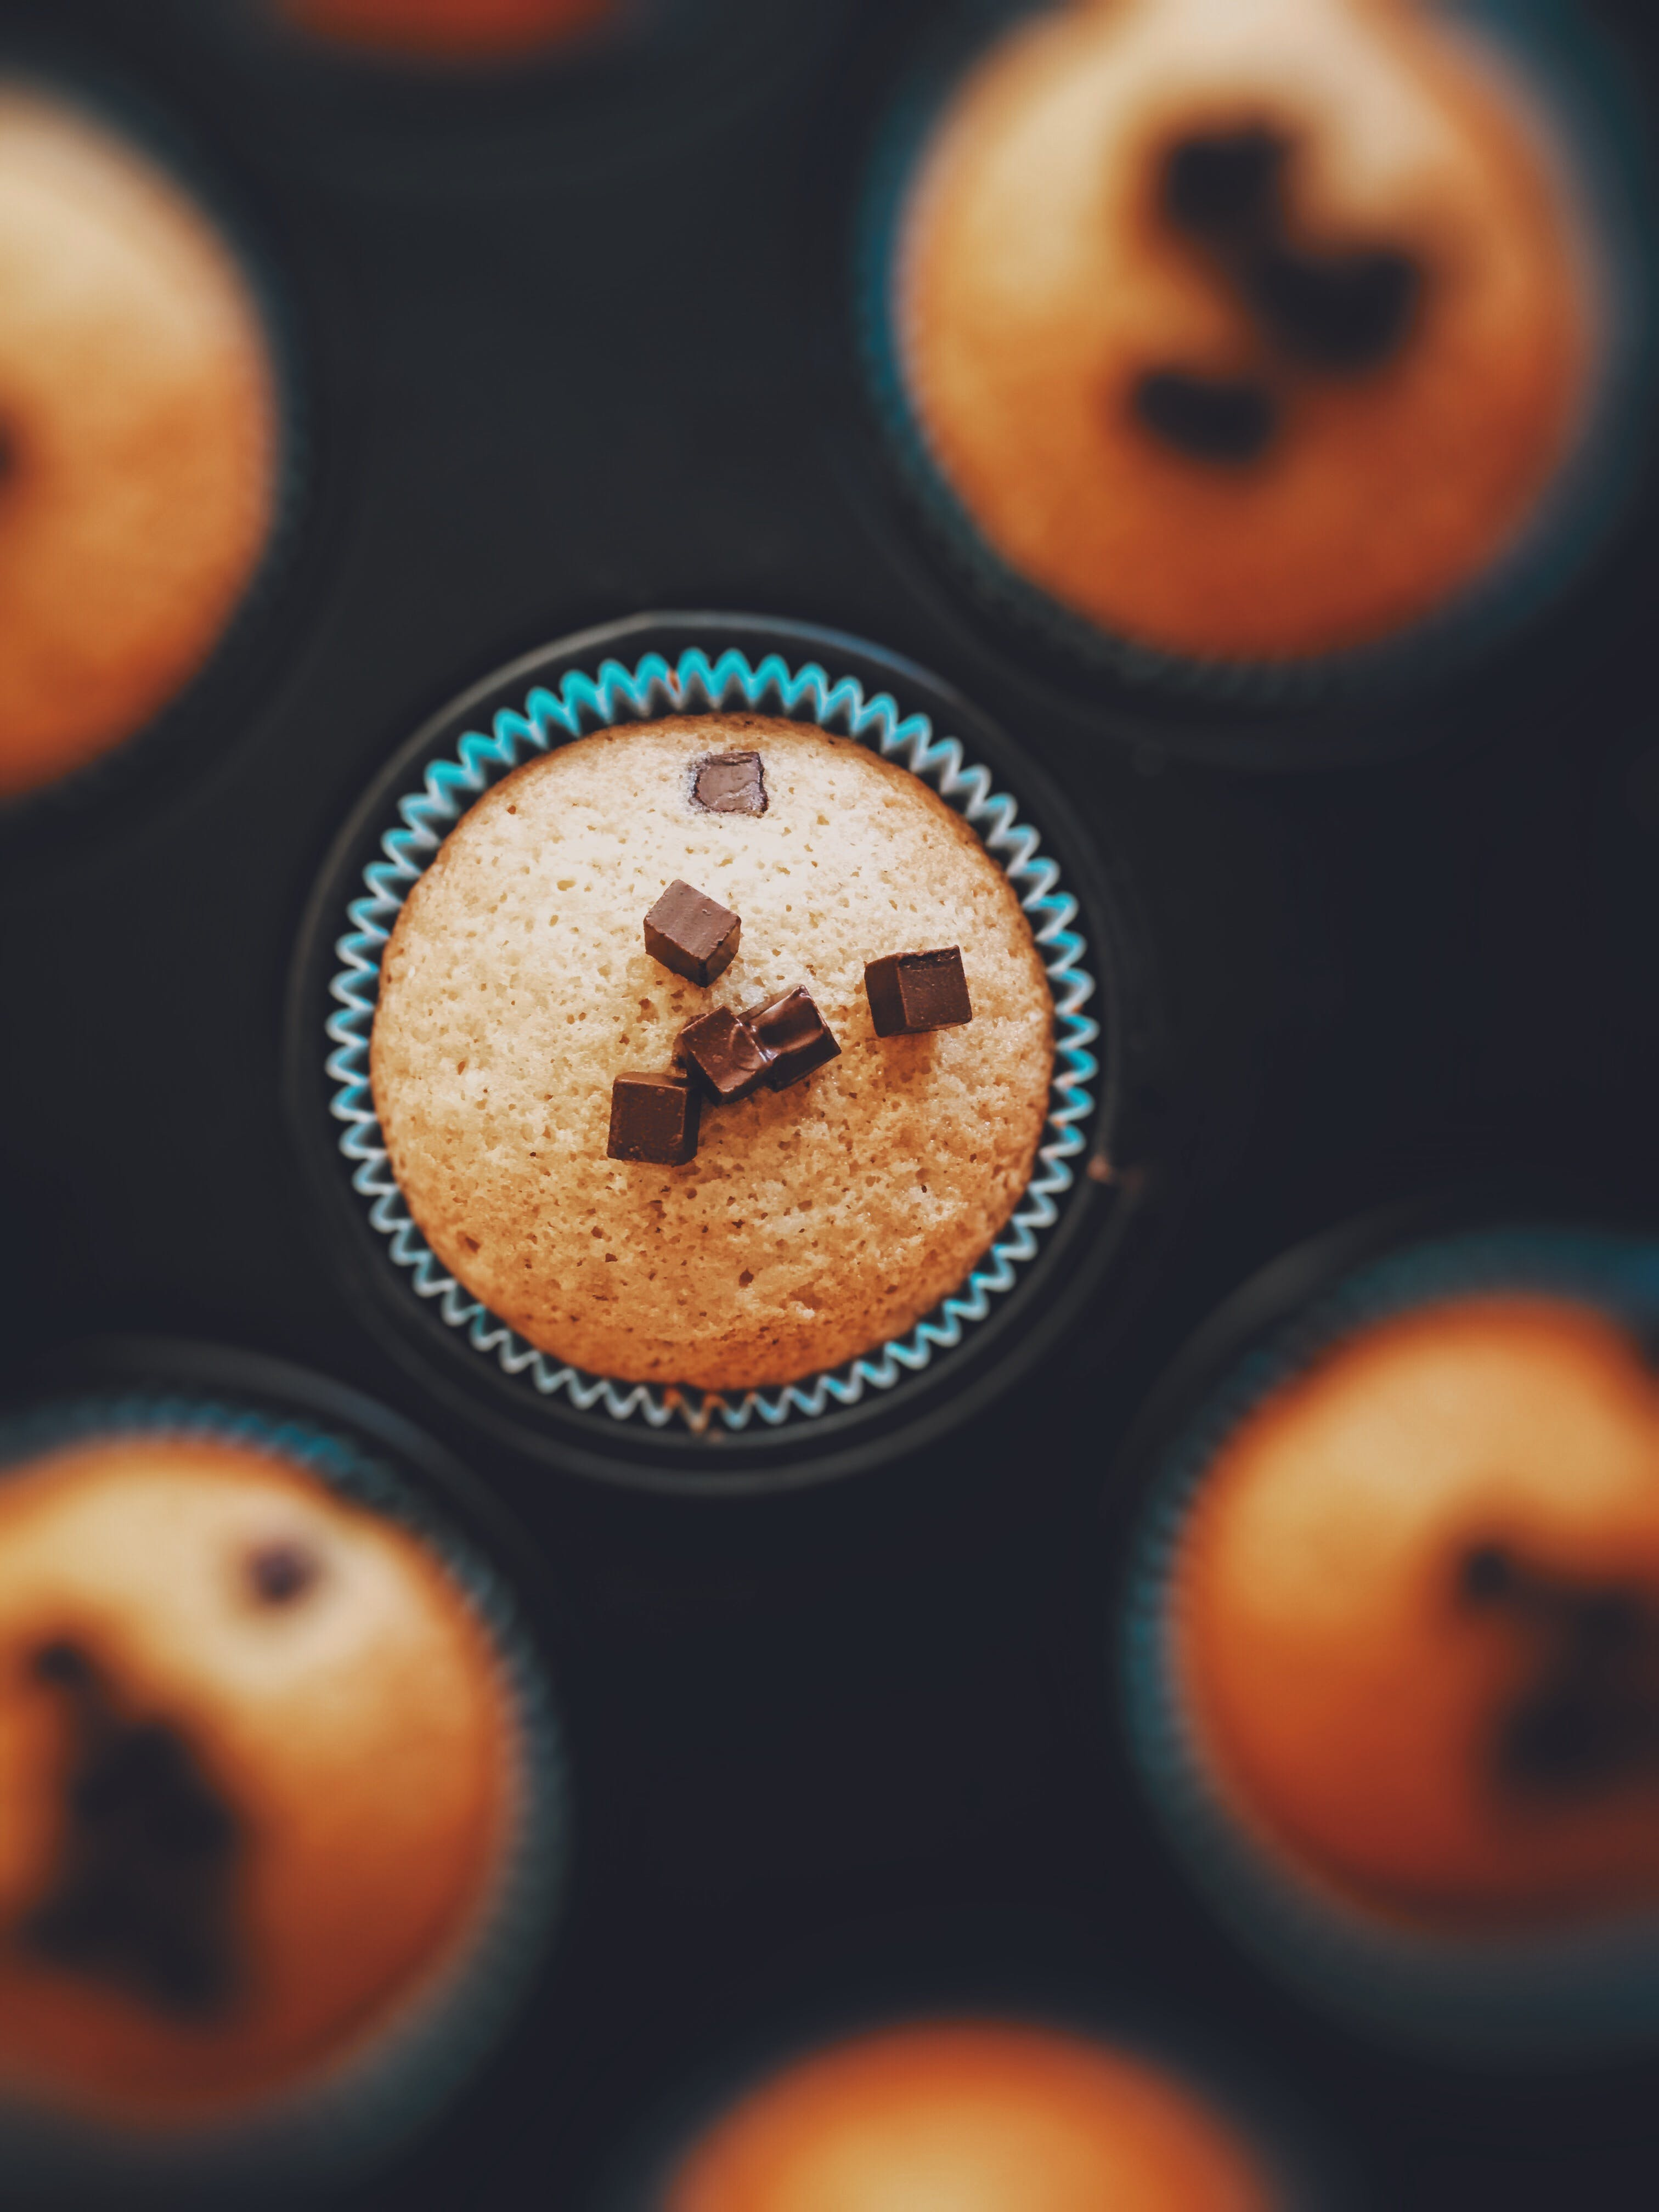 Cupcake With Chocolate Cubes